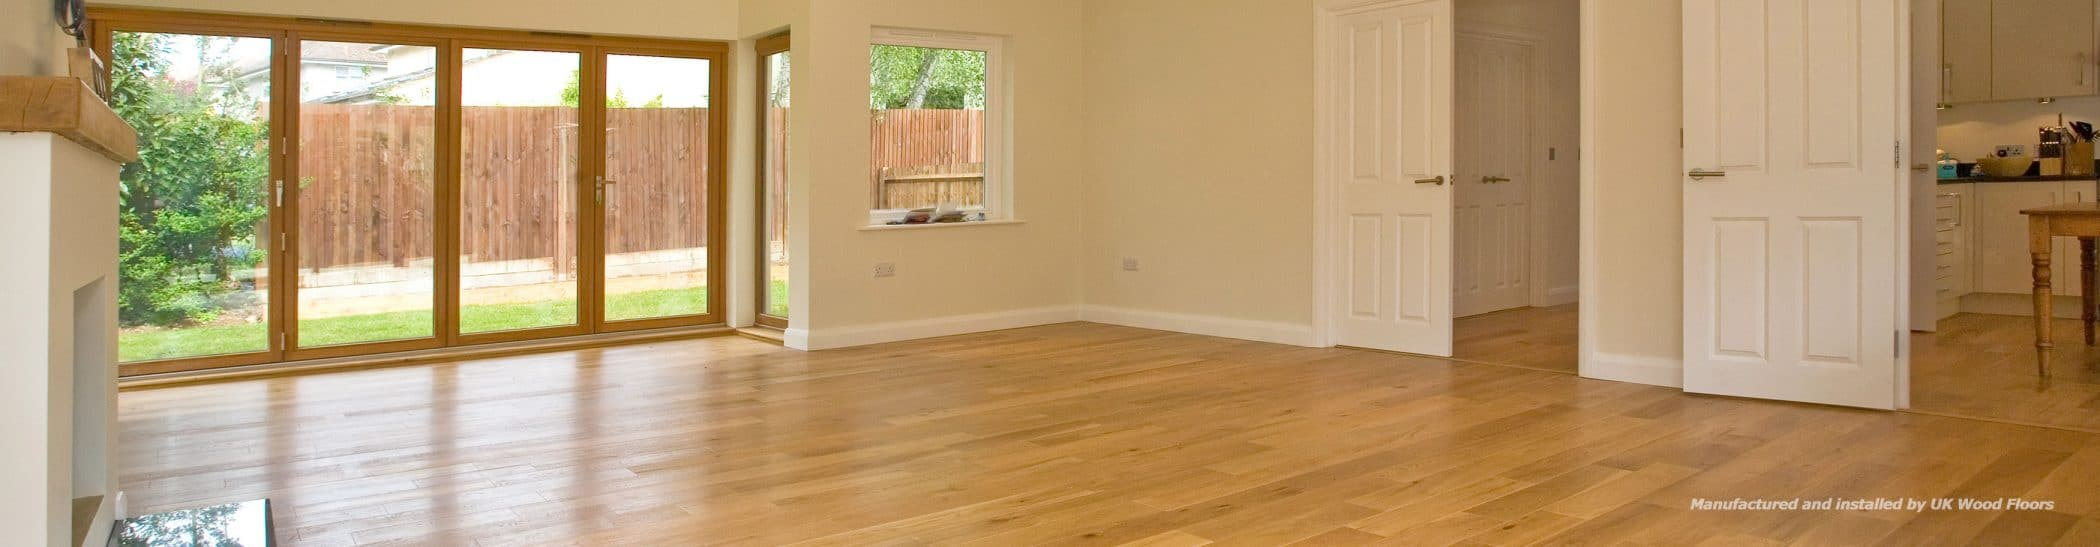 Buying a Real Wood Floor